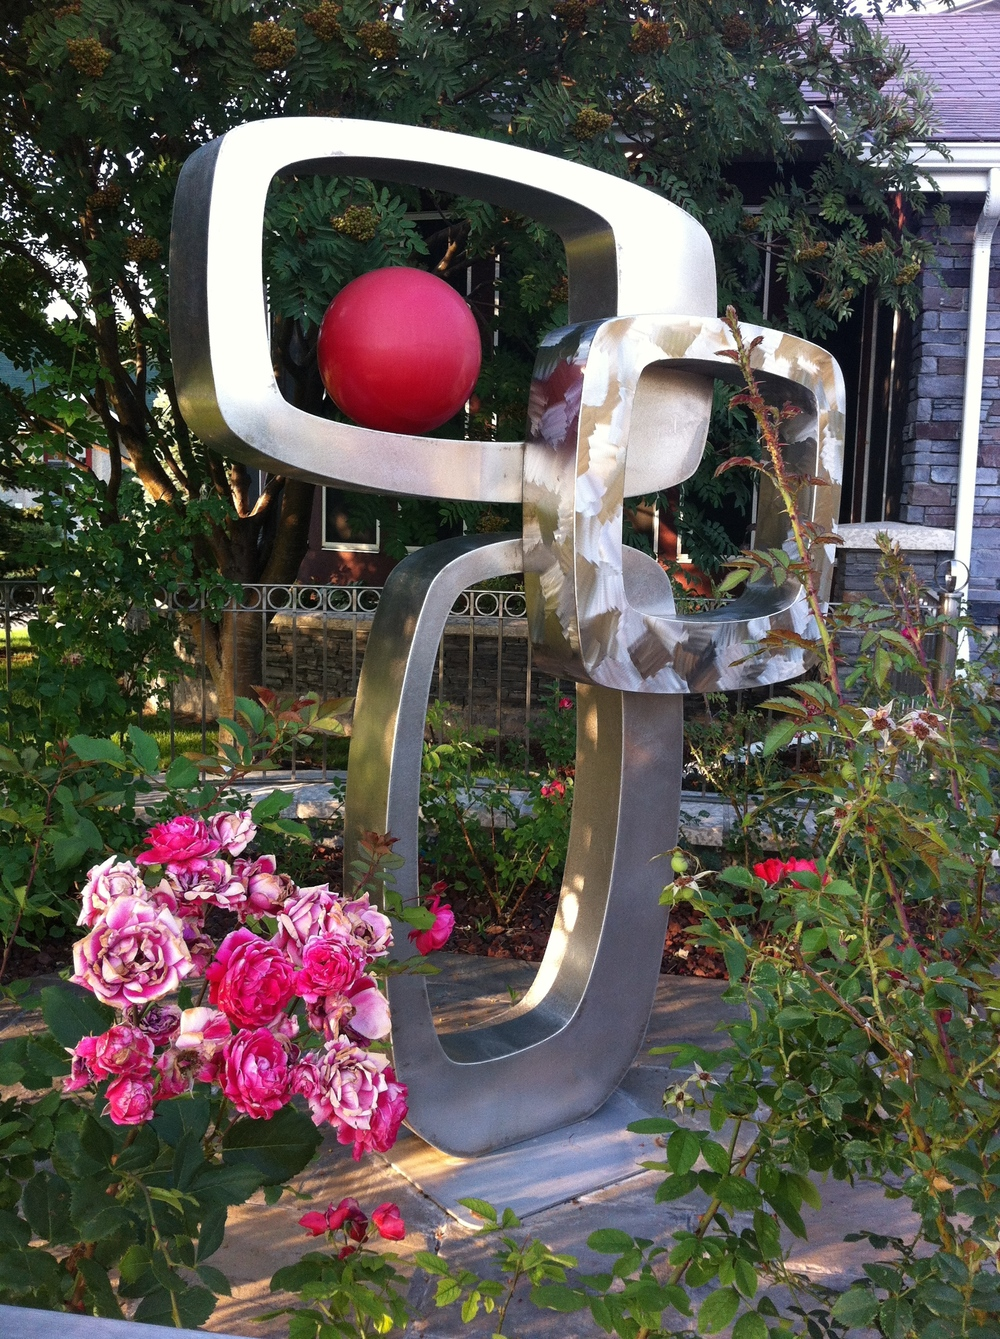 Fun sculpture in yard in Crescent Heights.